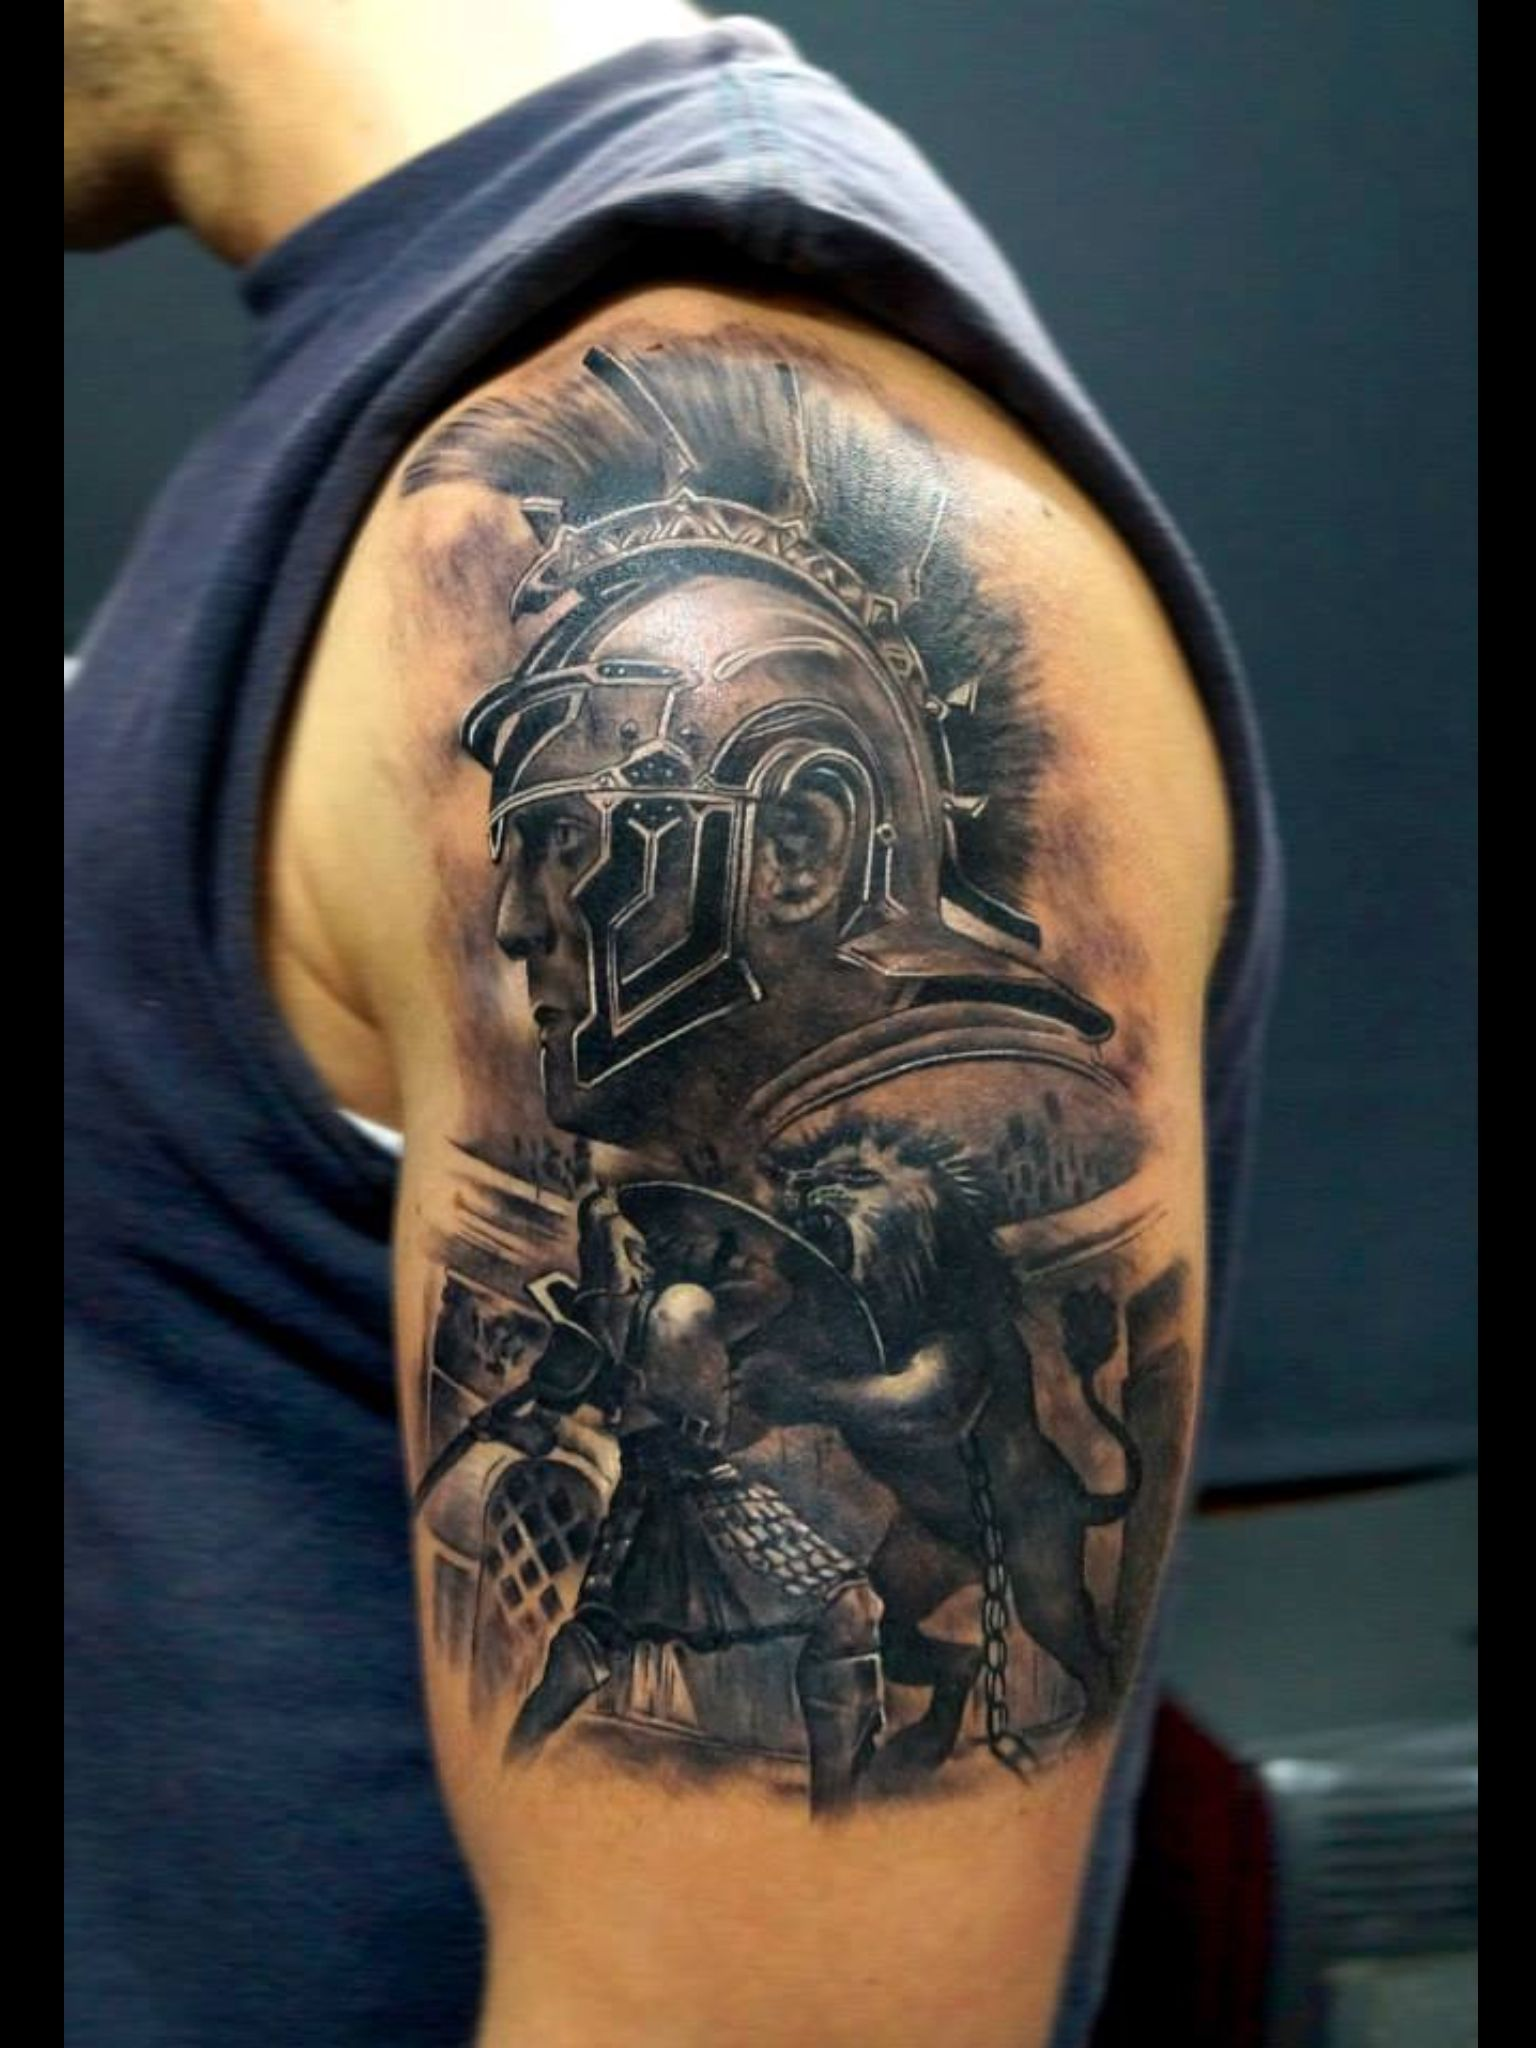 gladiator tattoo 3d tattoos pinterest gladiator tattoo tattoo and tatoos. Black Bedroom Furniture Sets. Home Design Ideas